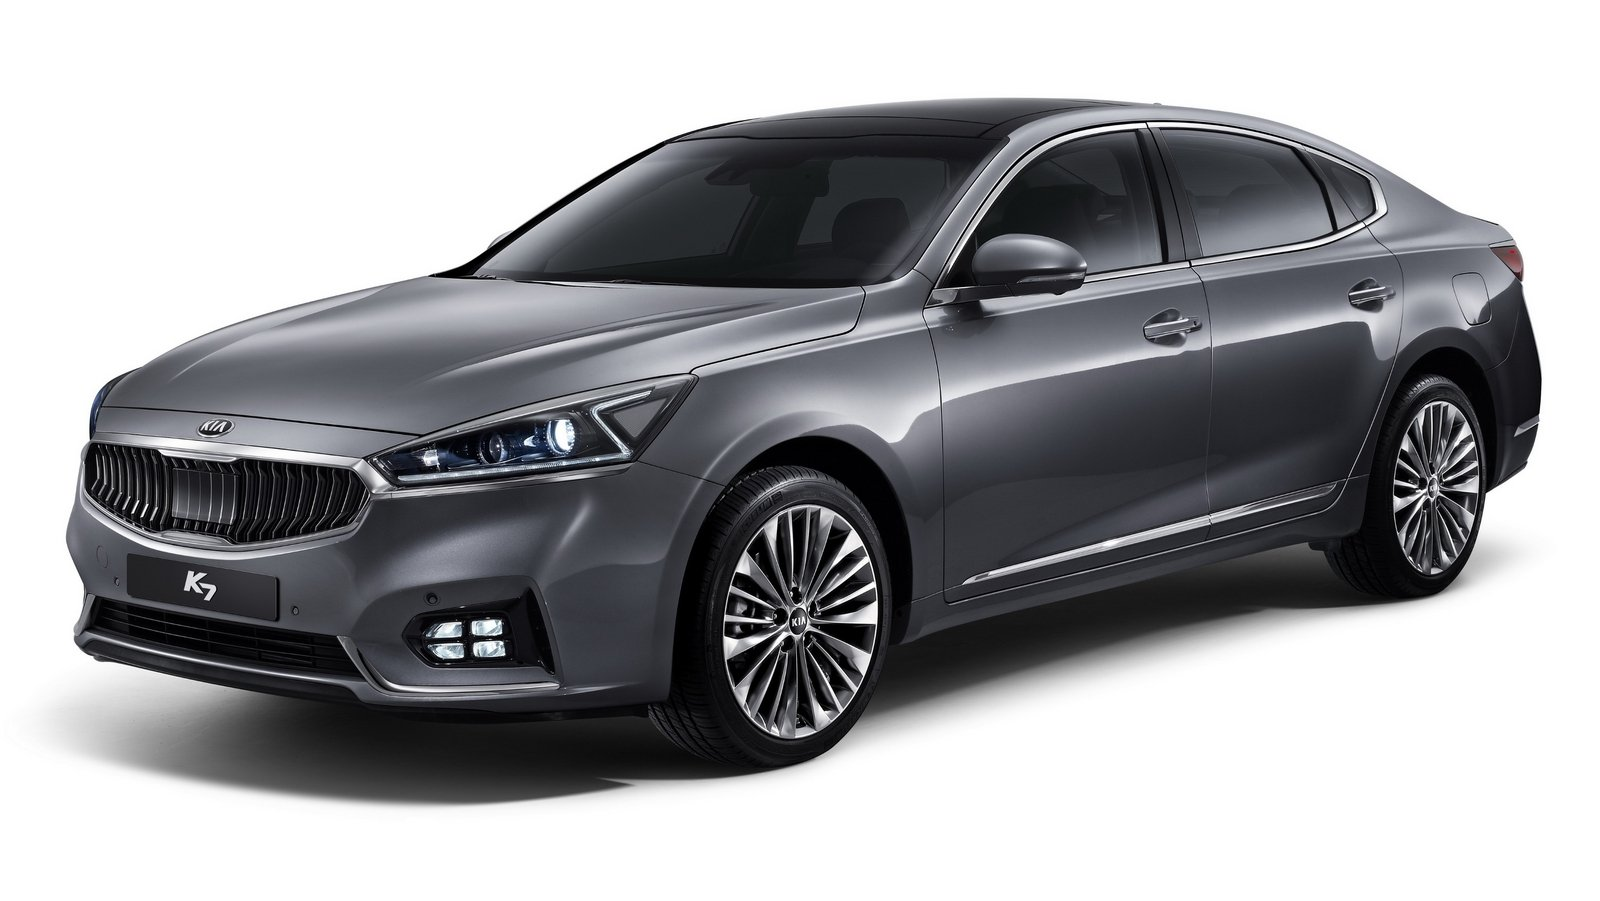 2017 kia cadenza picture 657373 car review top speed. Black Bedroom Furniture Sets. Home Design Ideas